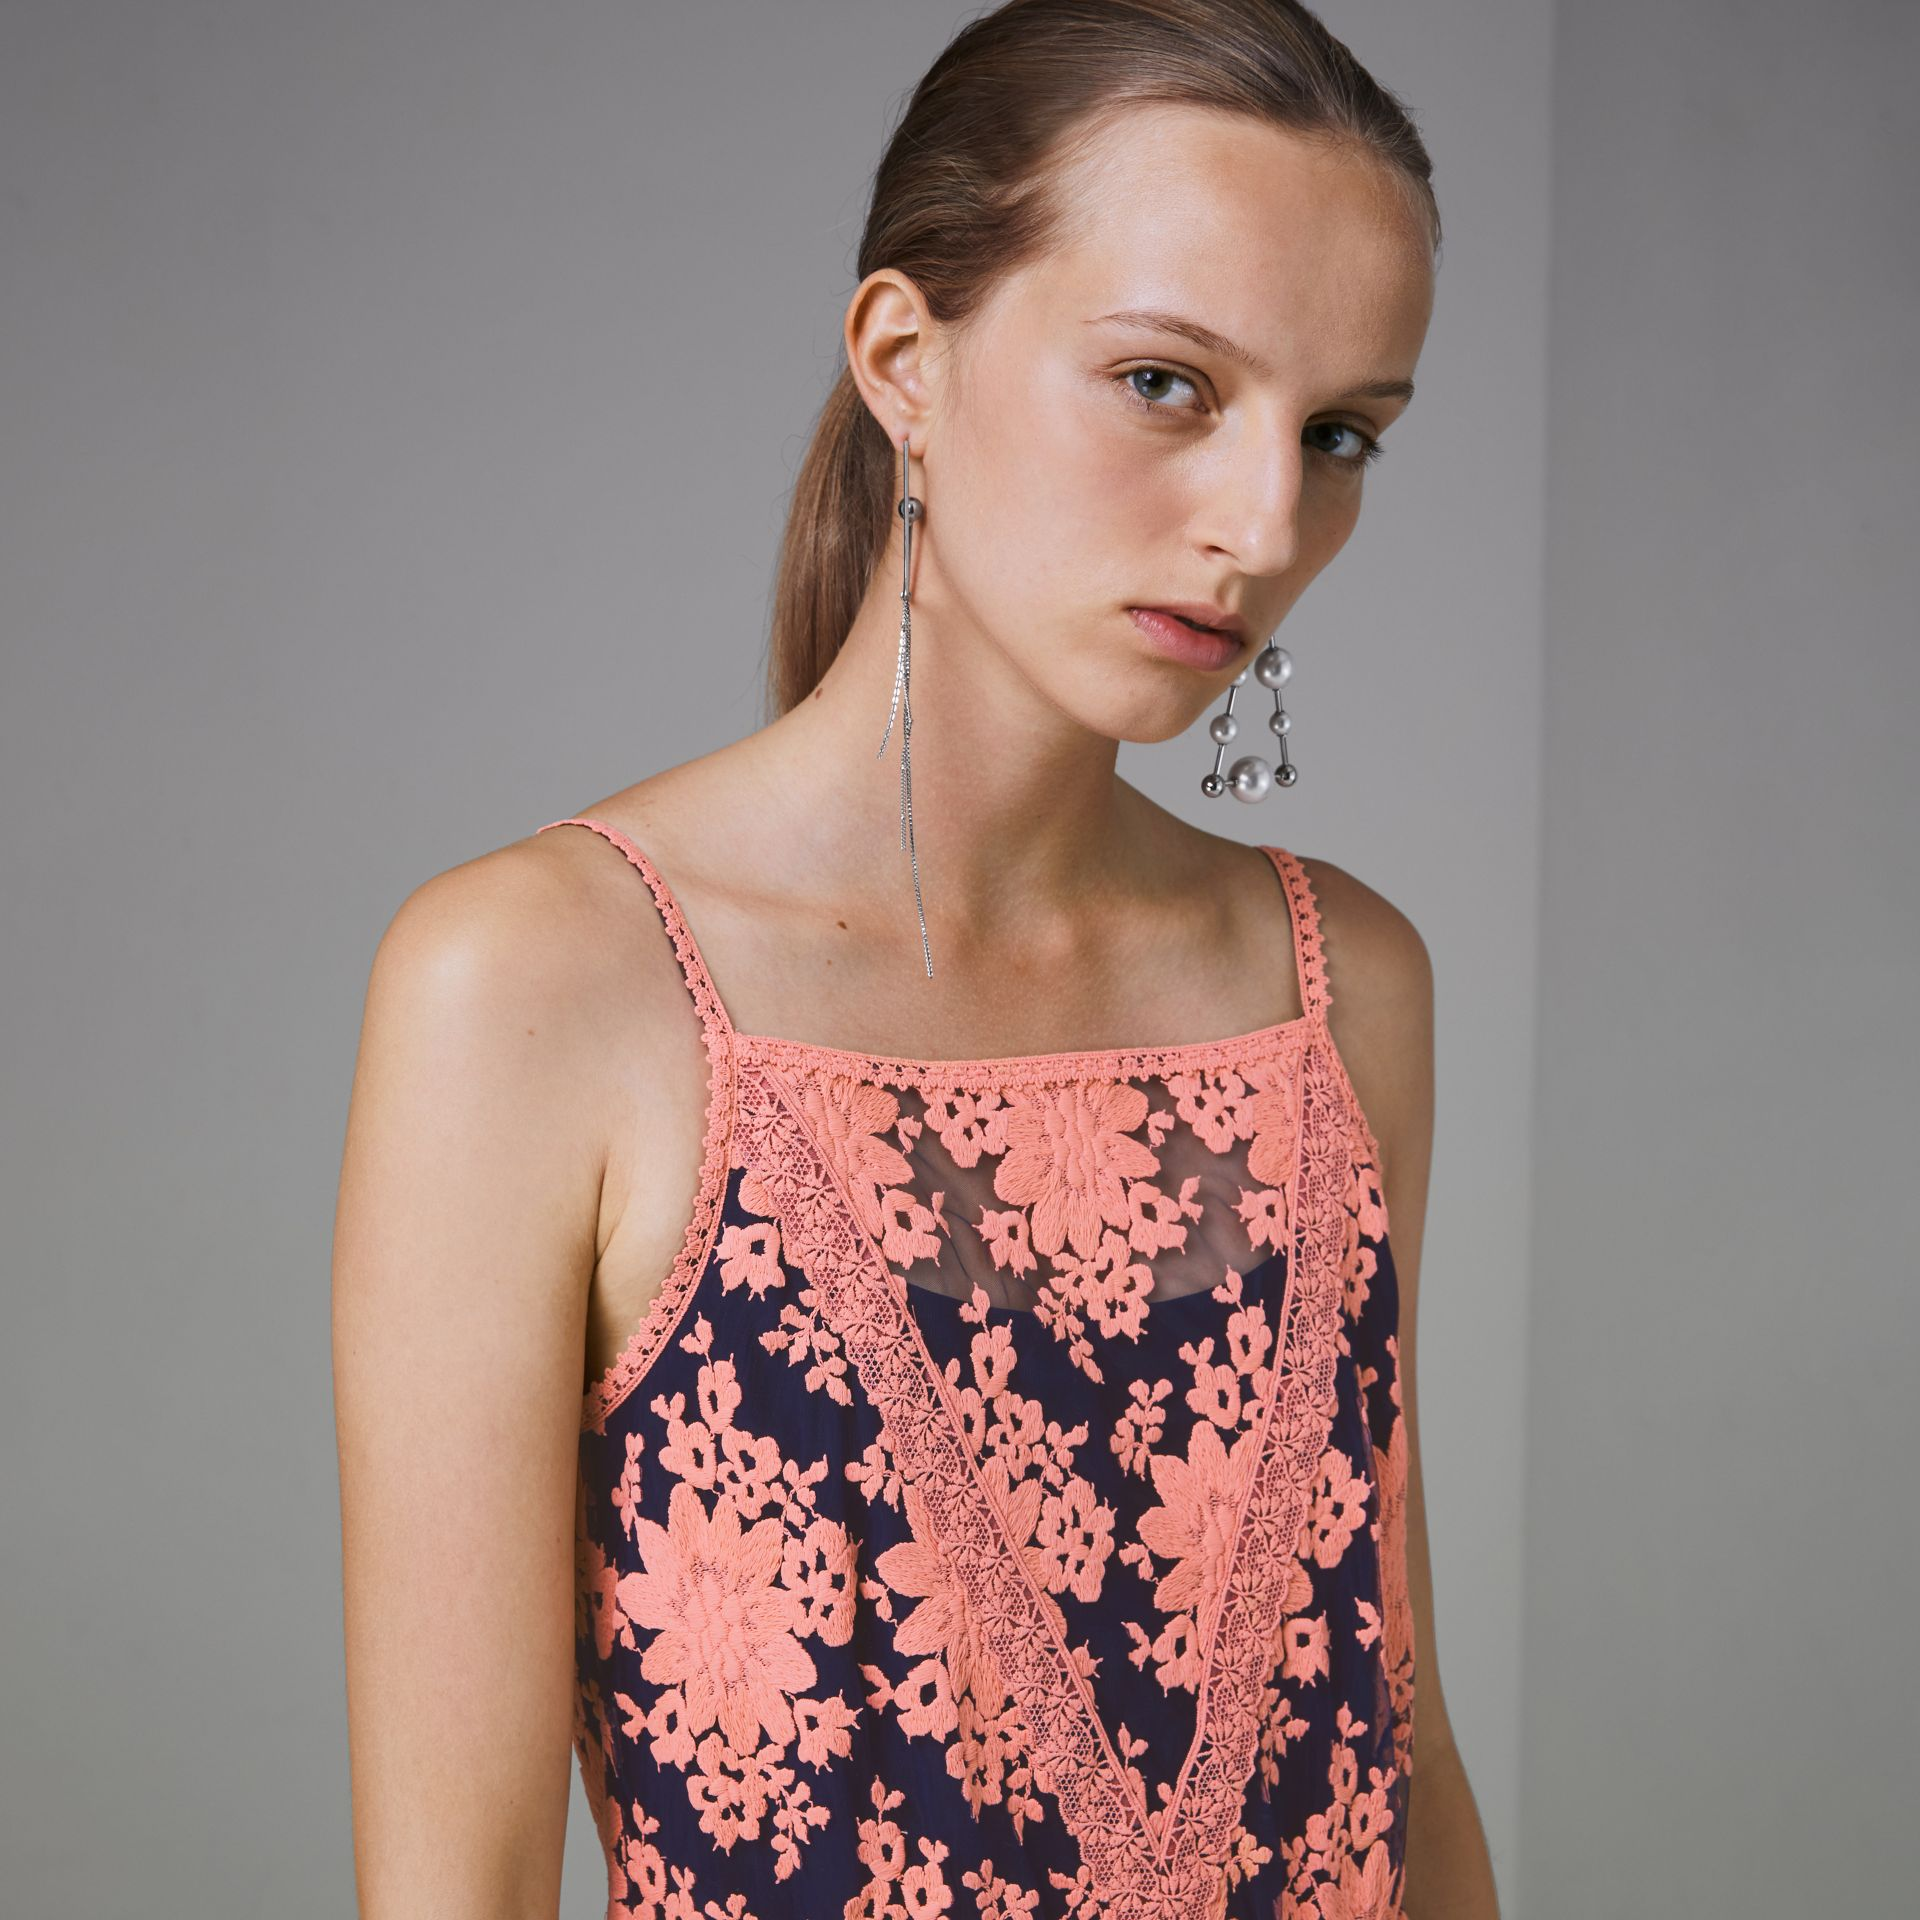 Floral-embroidered Sleeveless Dress in Rose/midnight Blue - Women | Burberry - gallery image 1